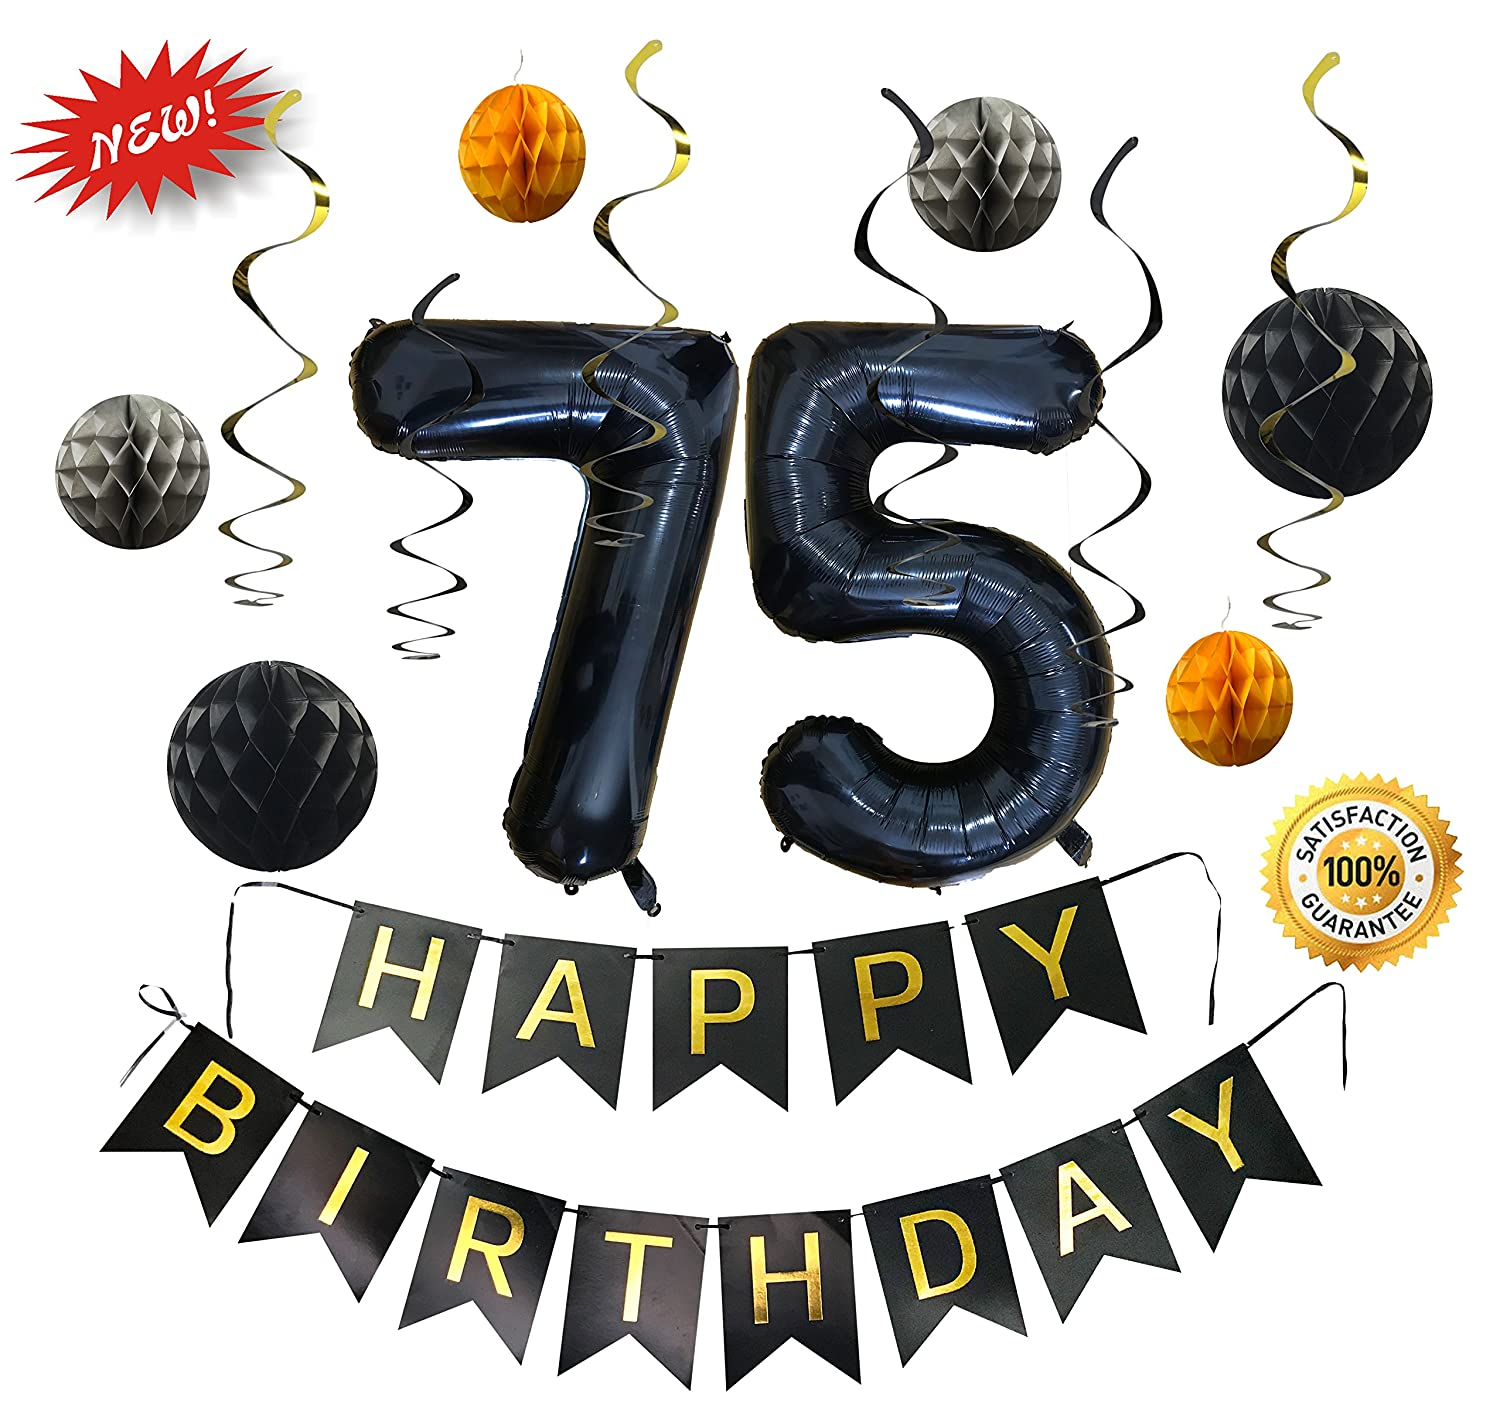 Amazon New Black Happy 75th Birthday Decorations Set By SAMIKA With 6 Honeycombs And Shiny Swirls Large 40 Inch Helium 75 Balloon Foil